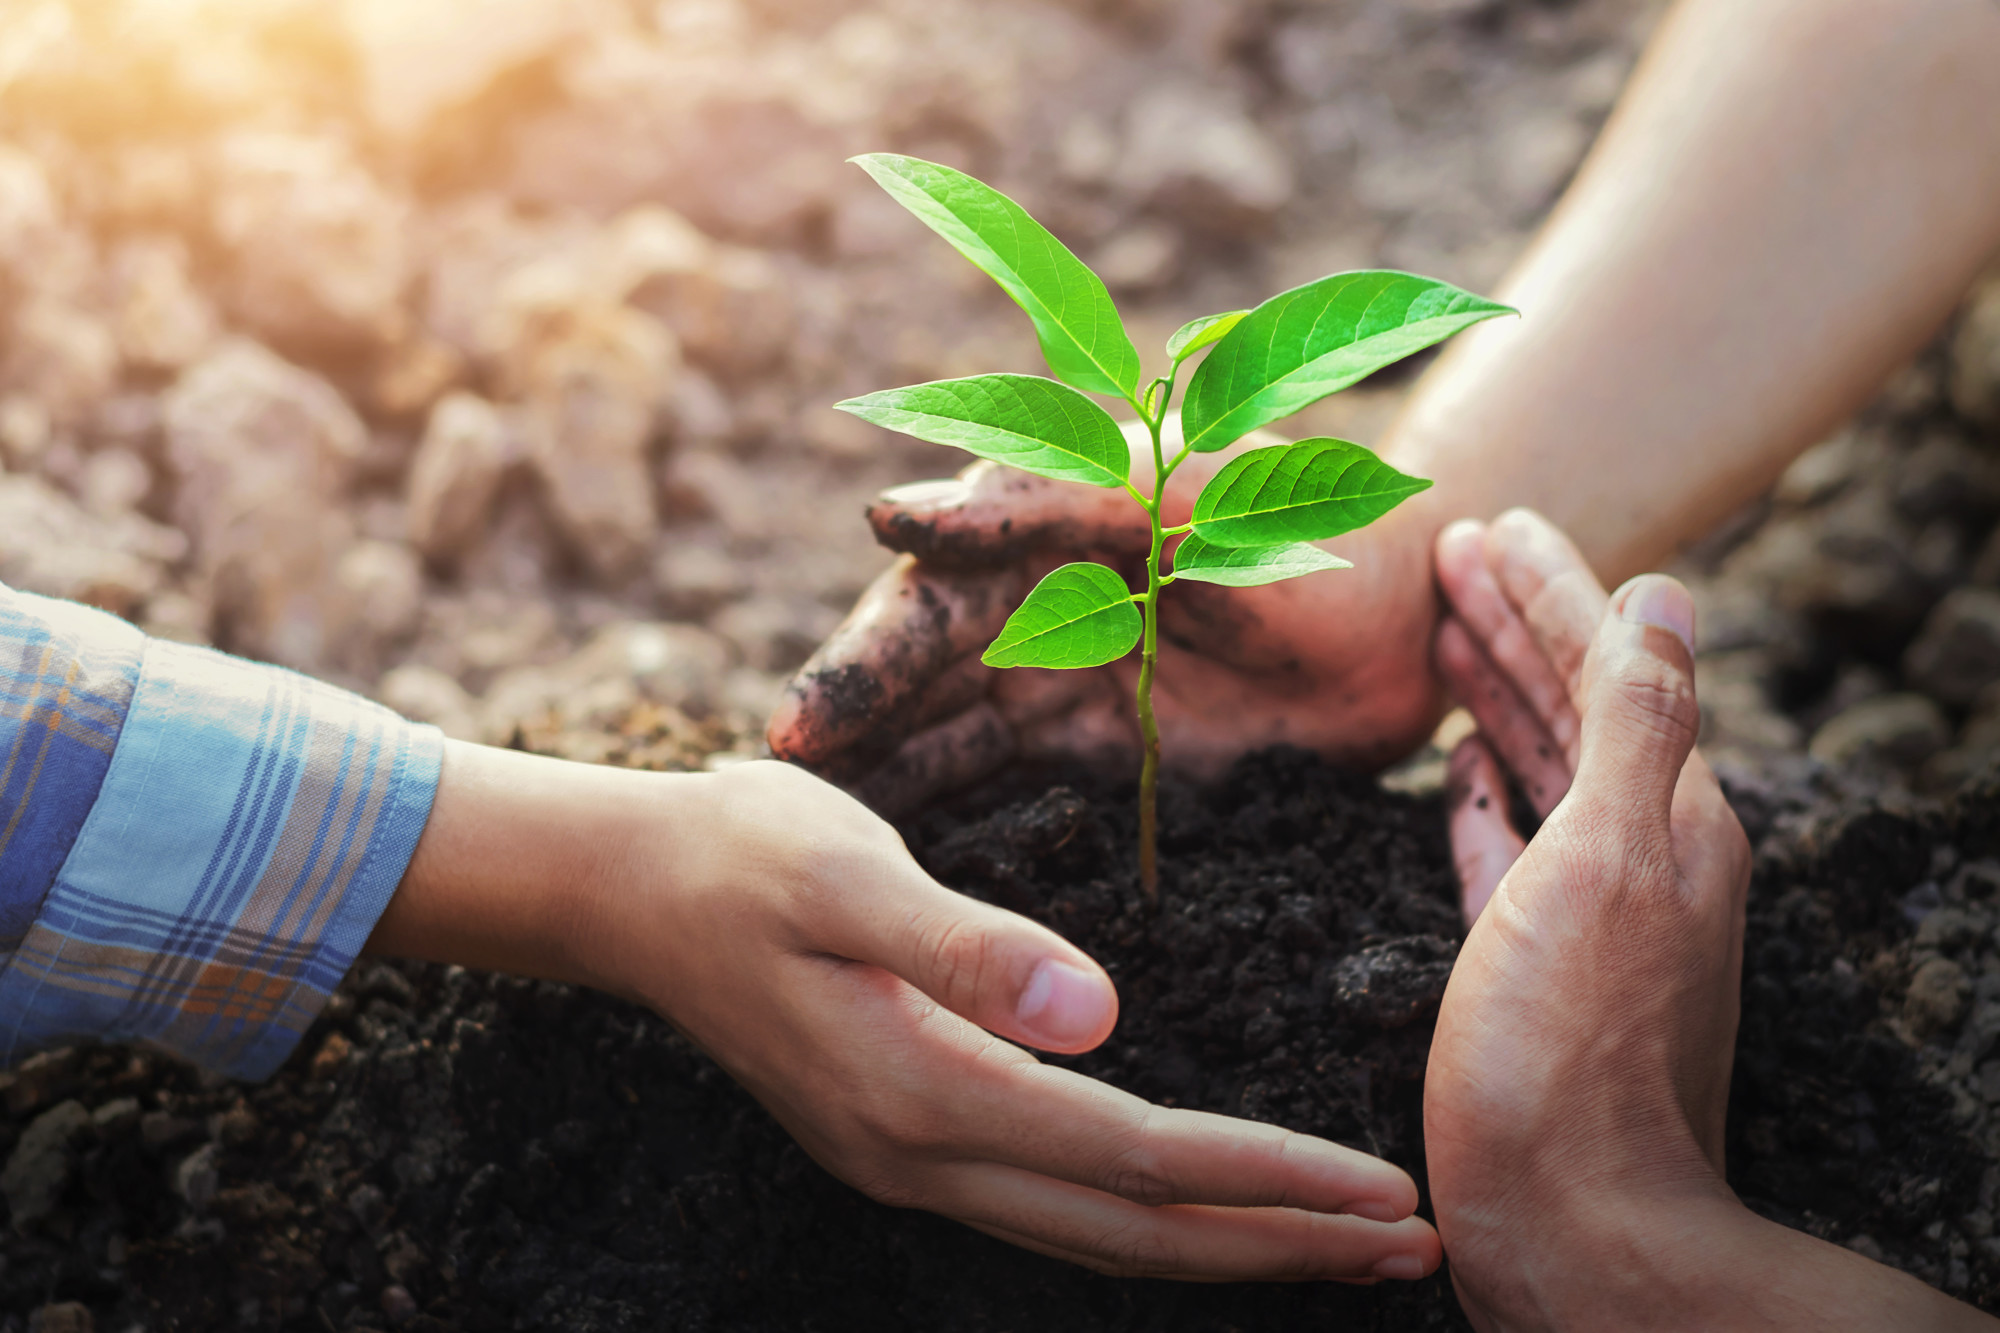 Do you want to plant a tree but don't know how to start? Then read our guide and learn all about how to plant trees in your yard and your community.